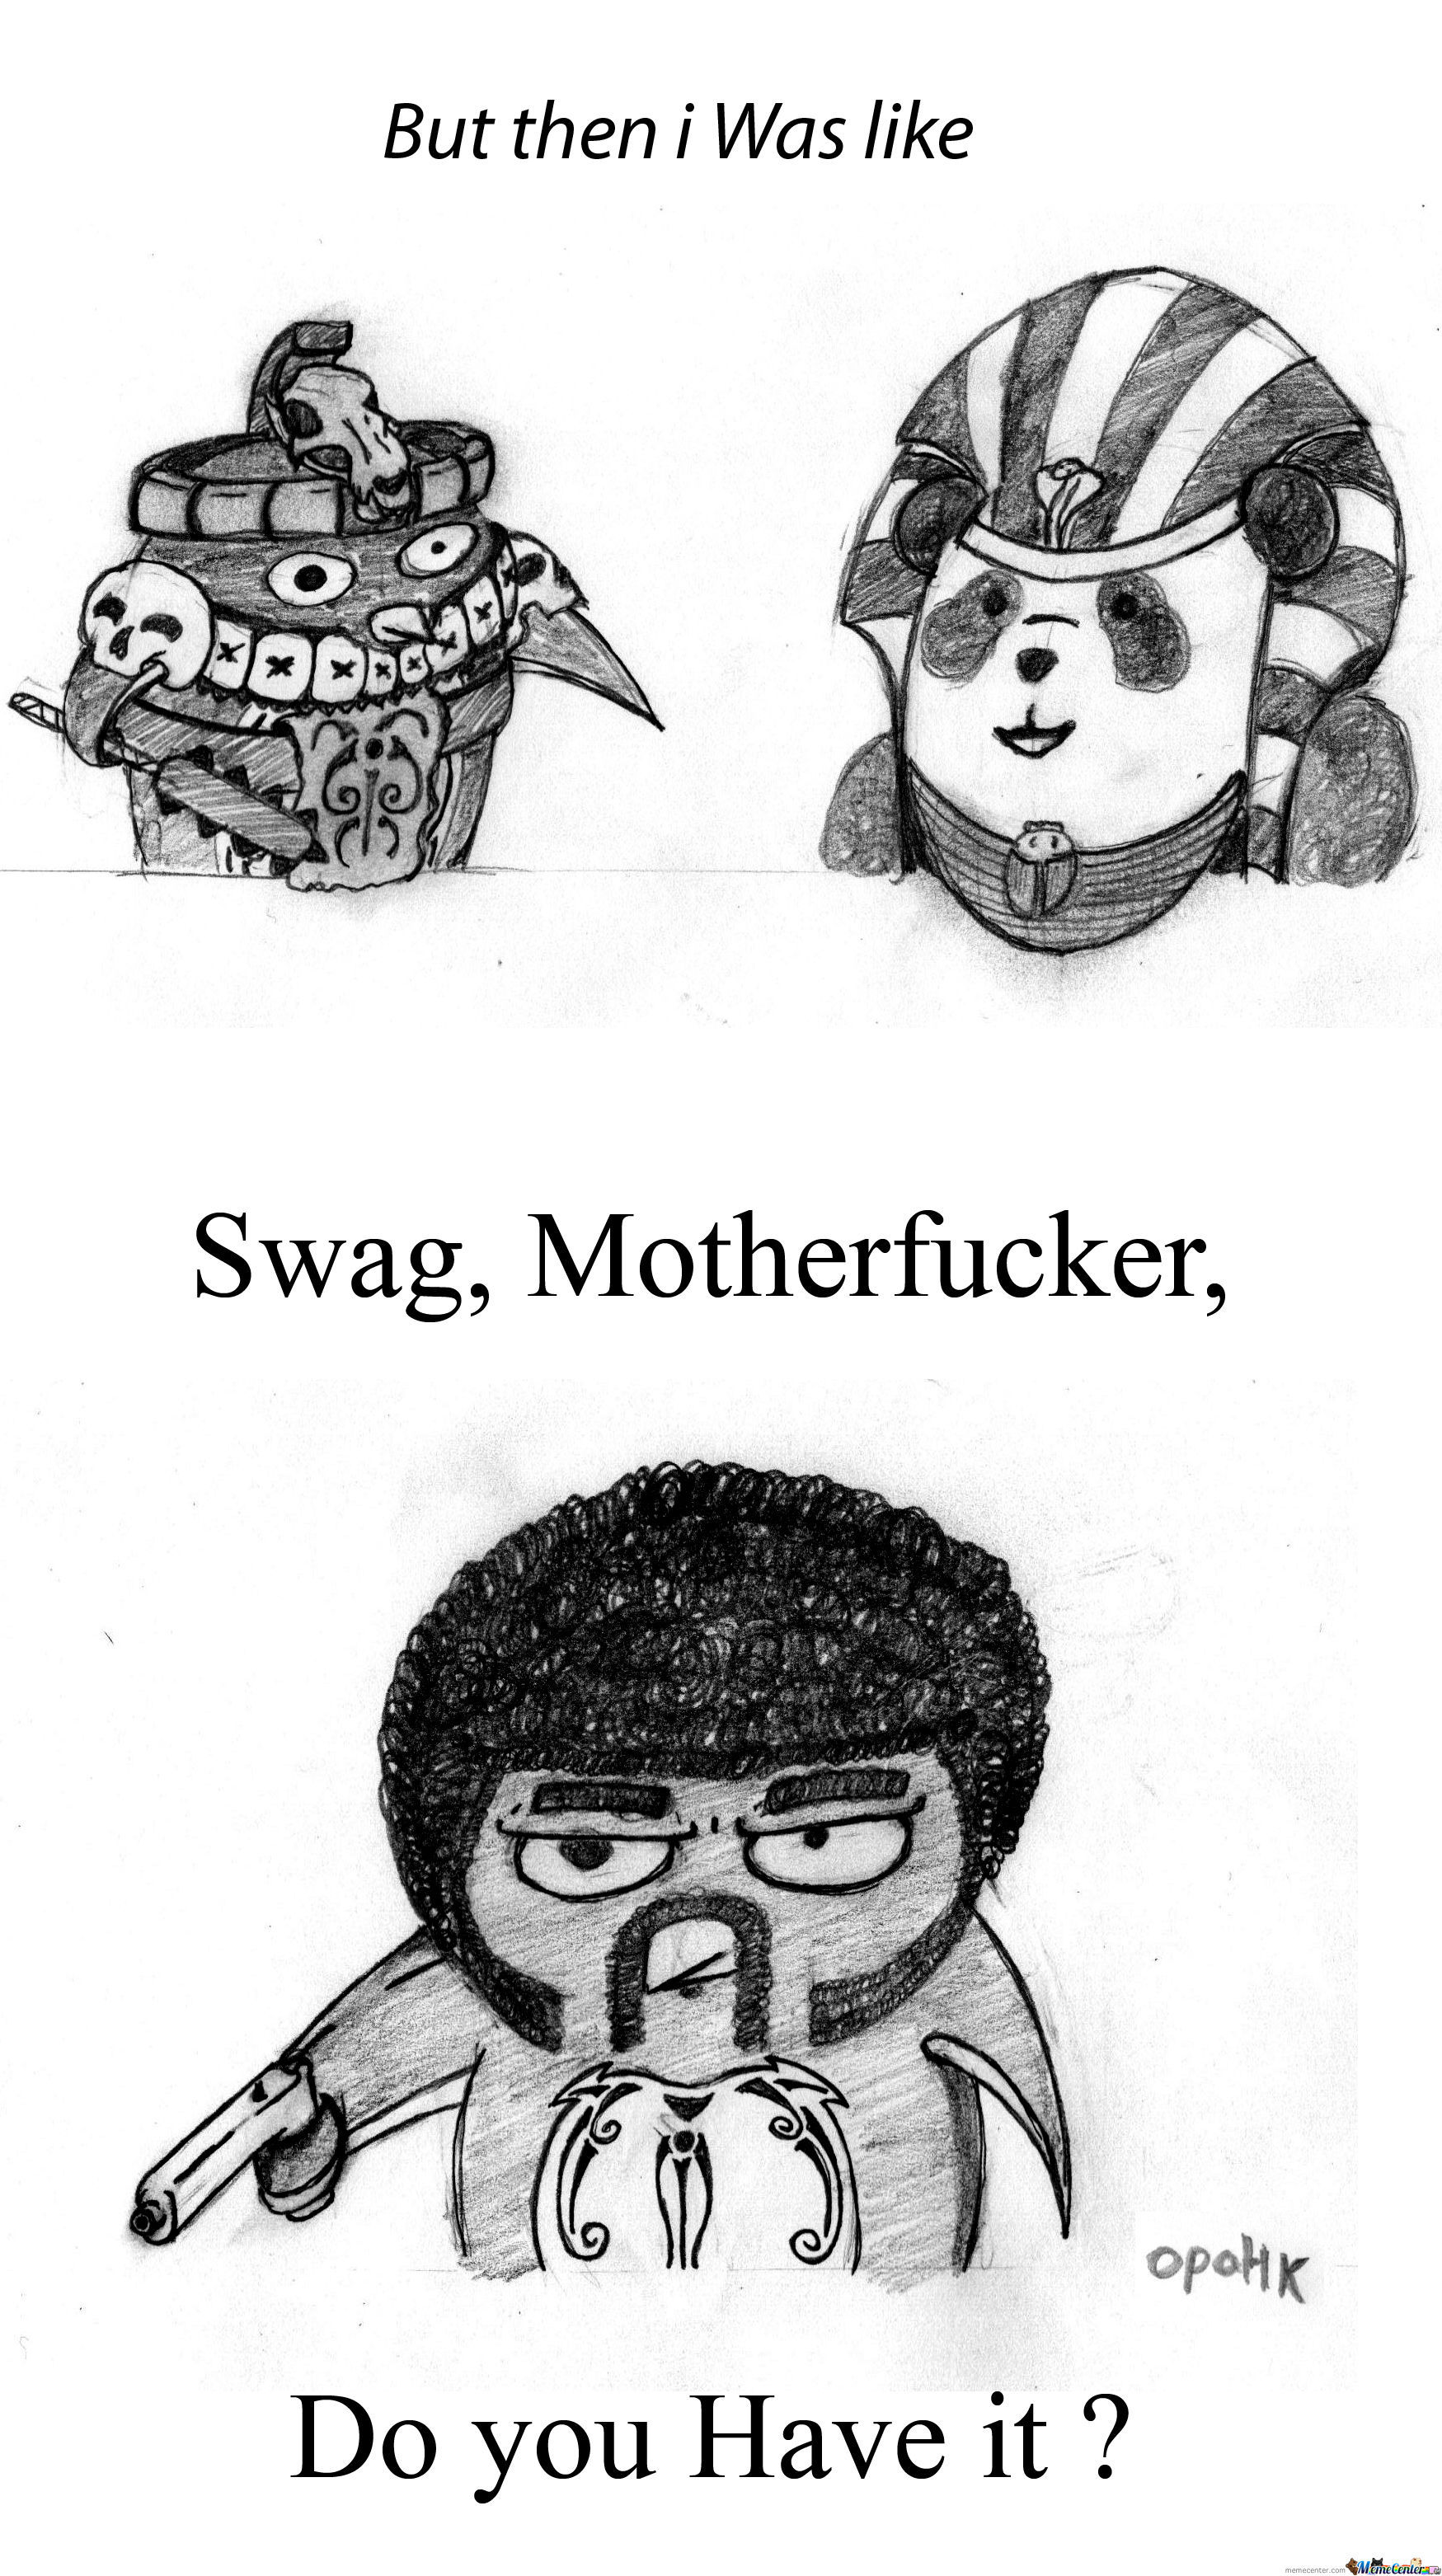 Swag Motherfucker